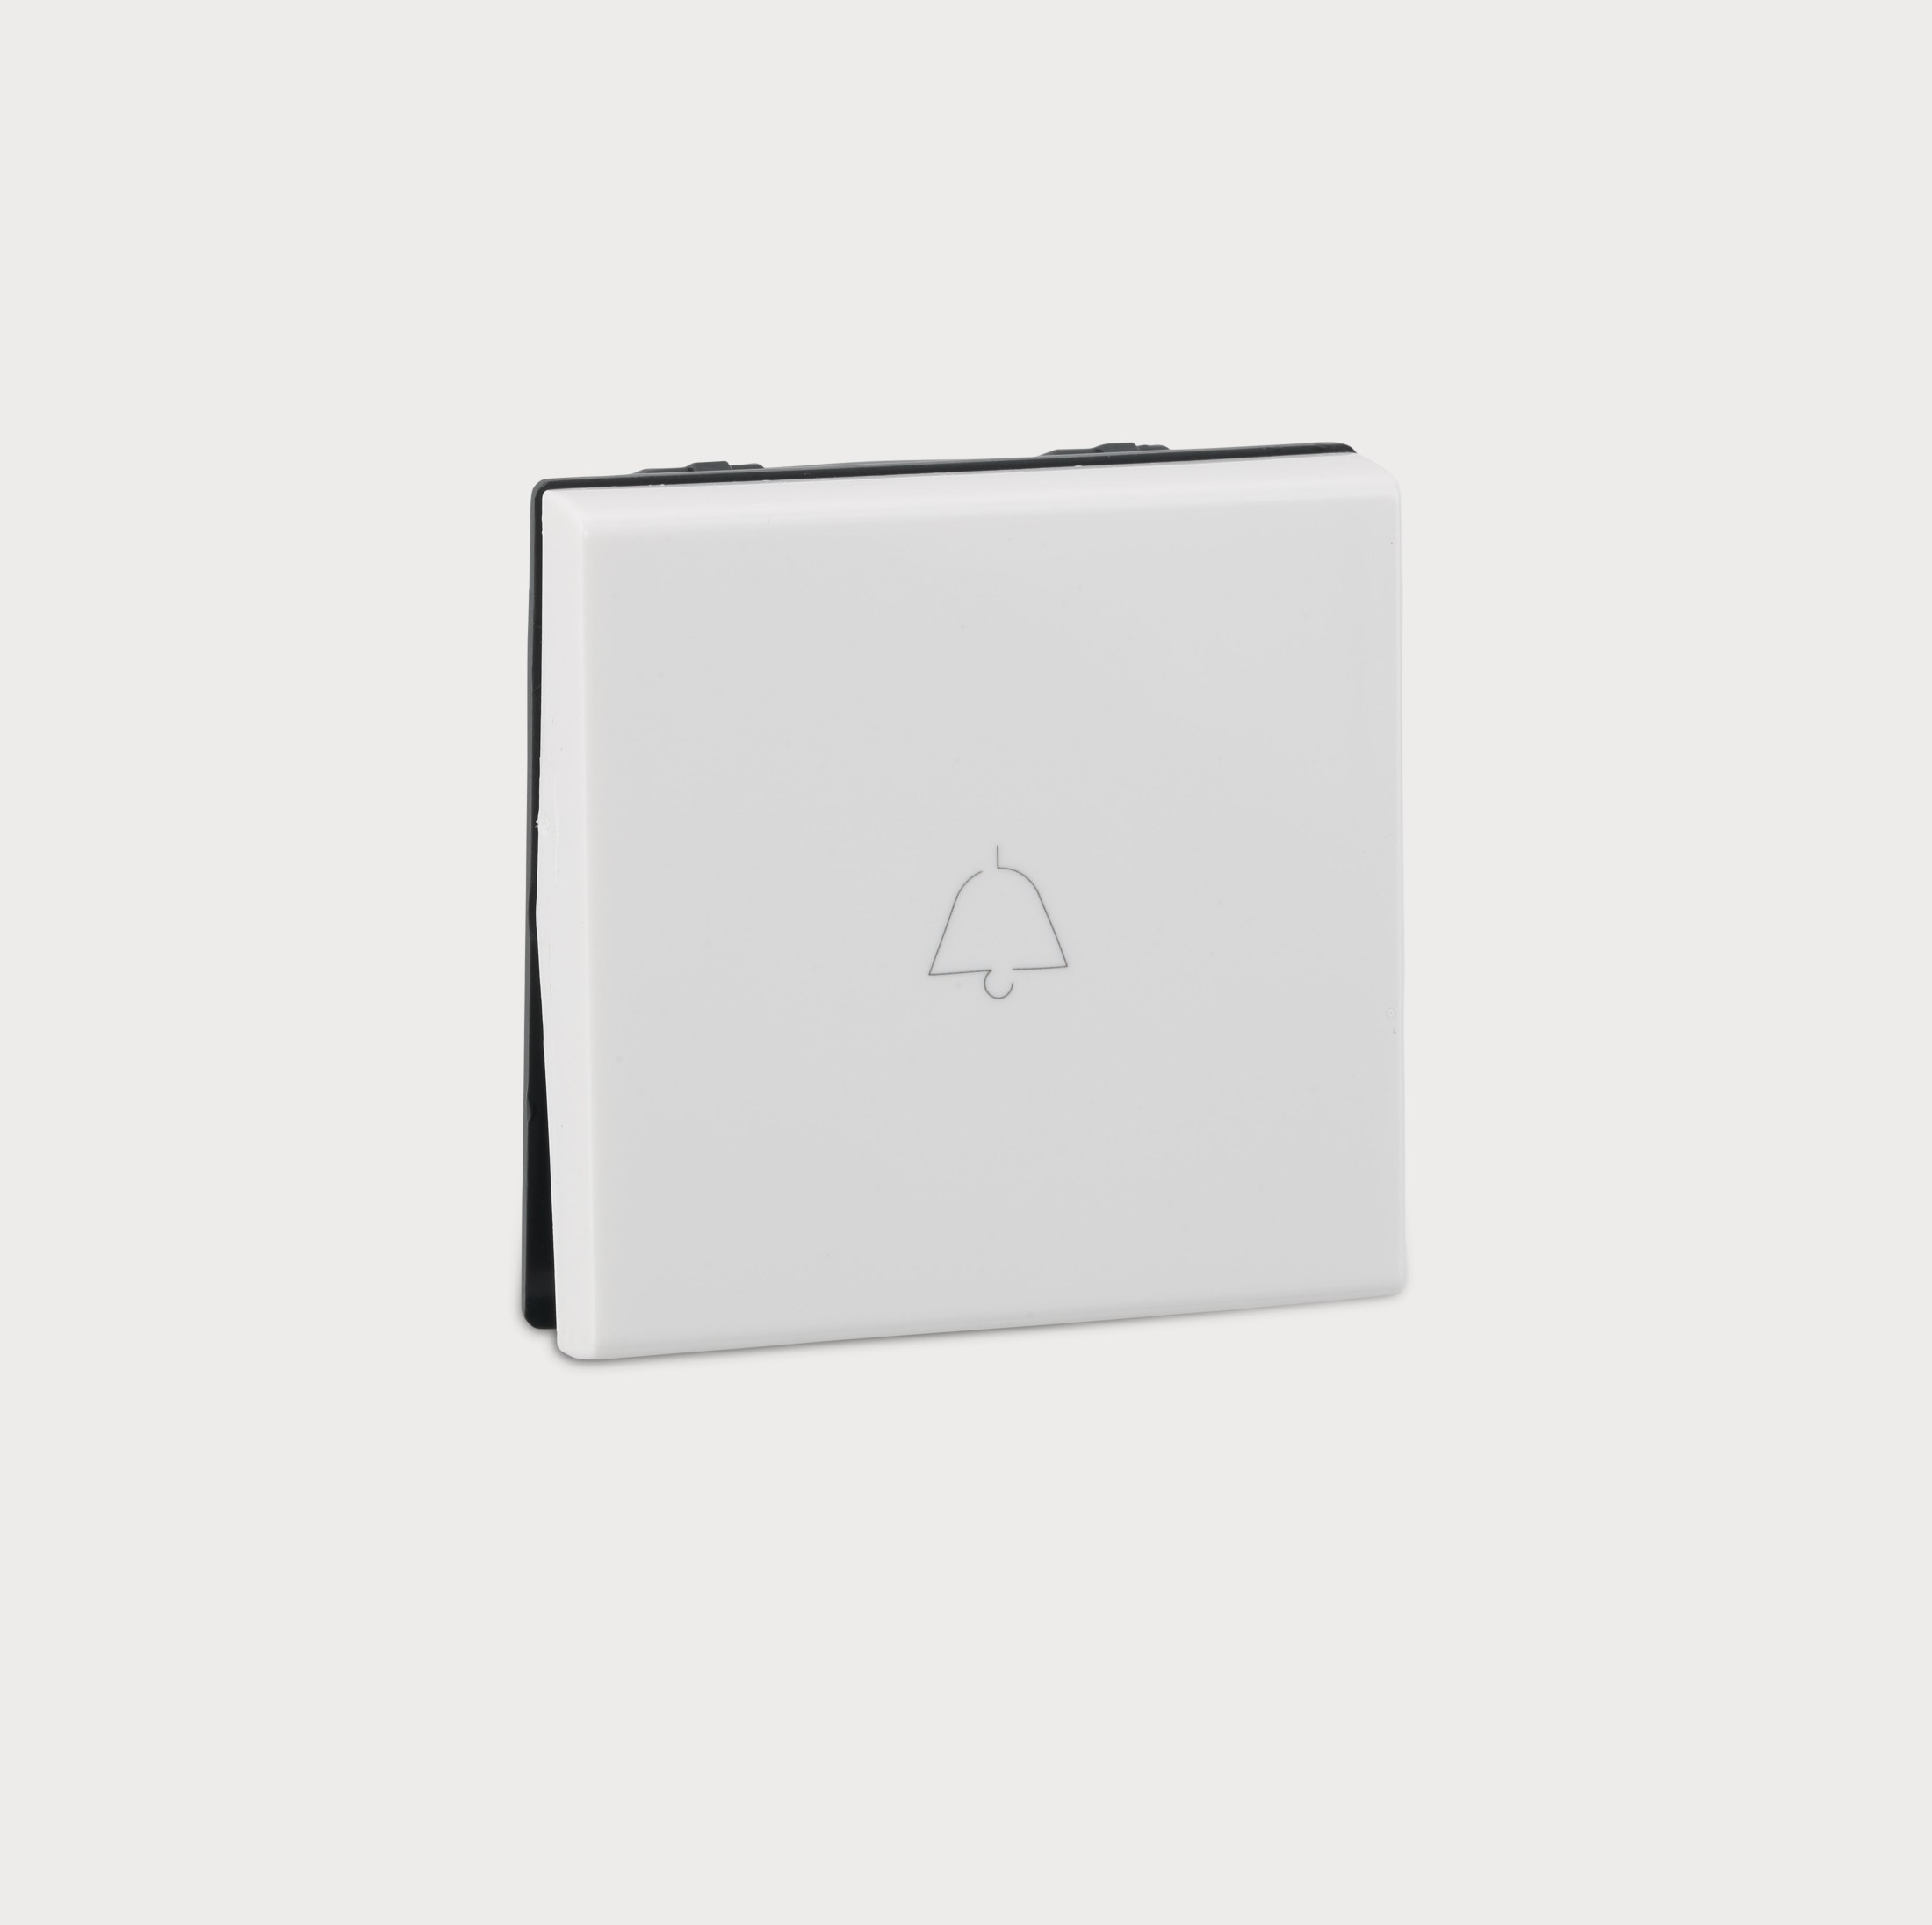 6A DP Bell Push - 2 Module (White) 673022 - Electrical and ...